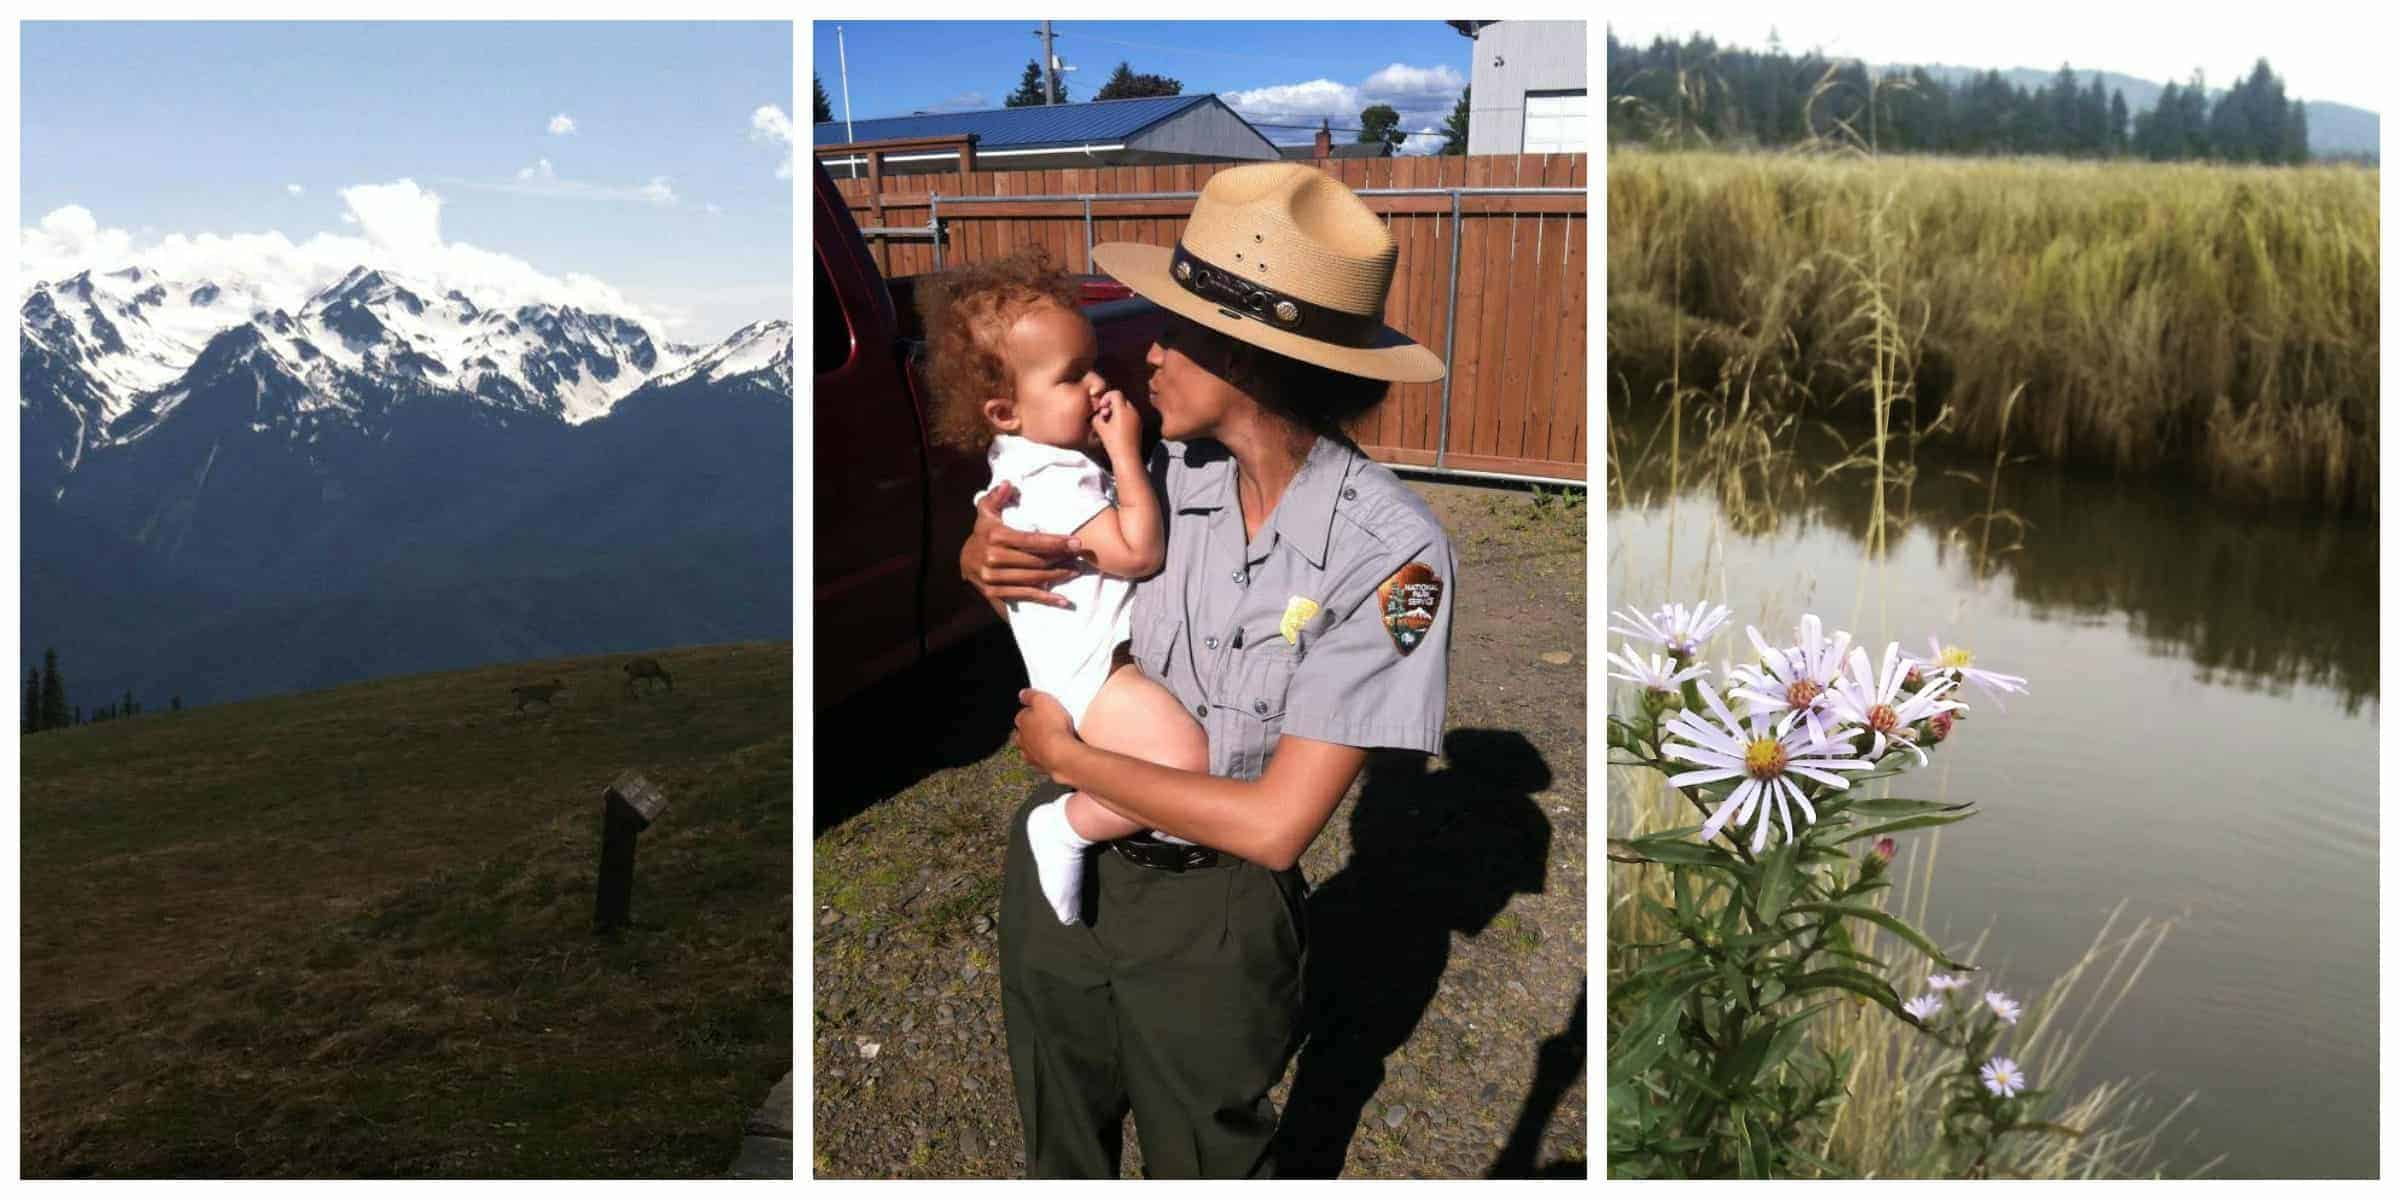 Snow-covered mountains, an African American woman in a park ranger uniform holds a baby, purple flowers by a body of water.